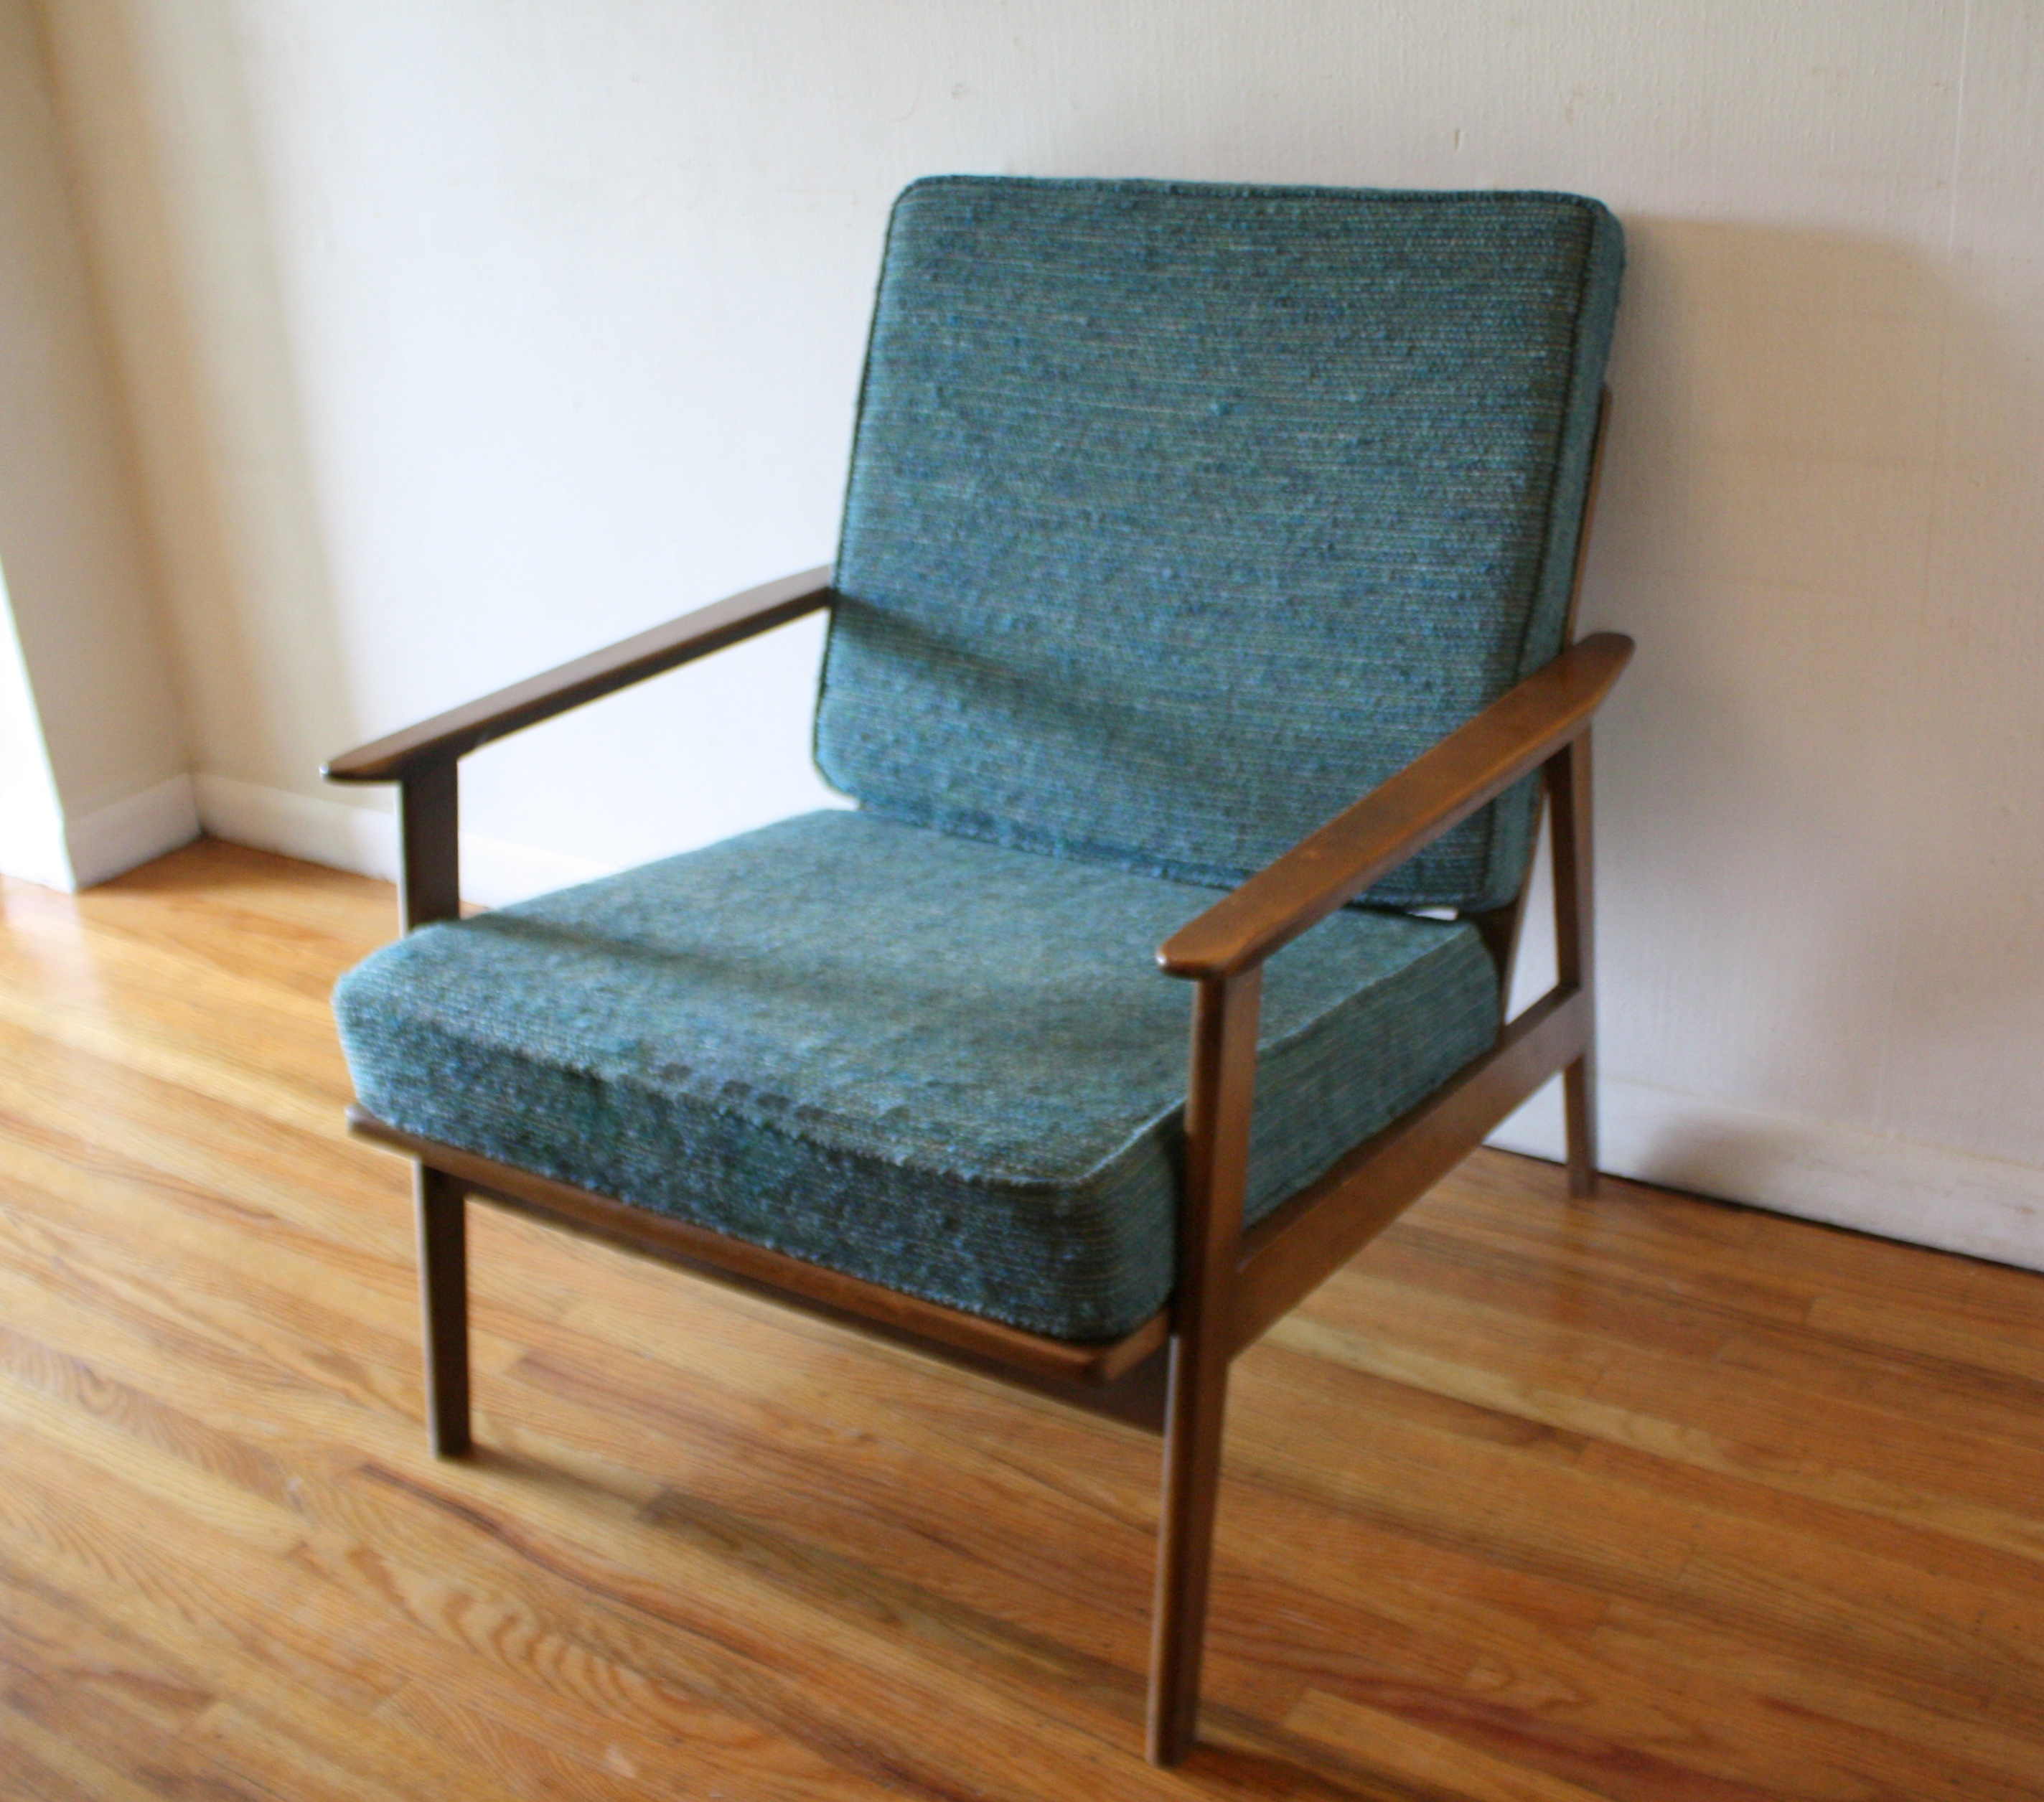 Delicieux Mcm Arm Chair With Turquoise Cushions 3